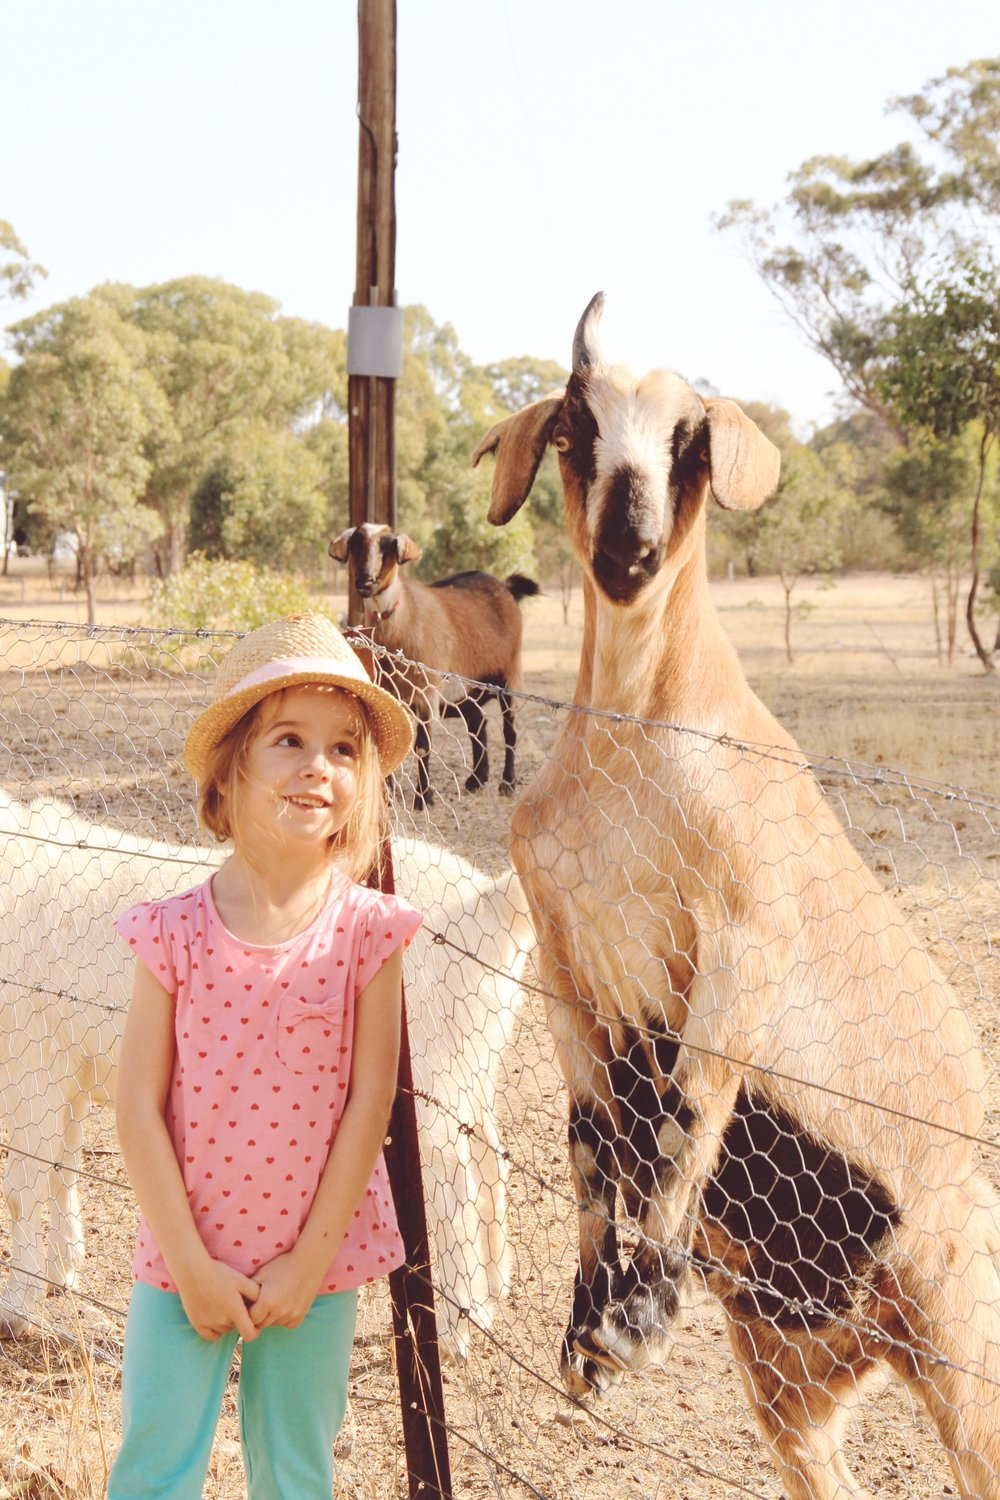 Kids love farm stays! Here's Ella with Ruffy, the one-horned goat.